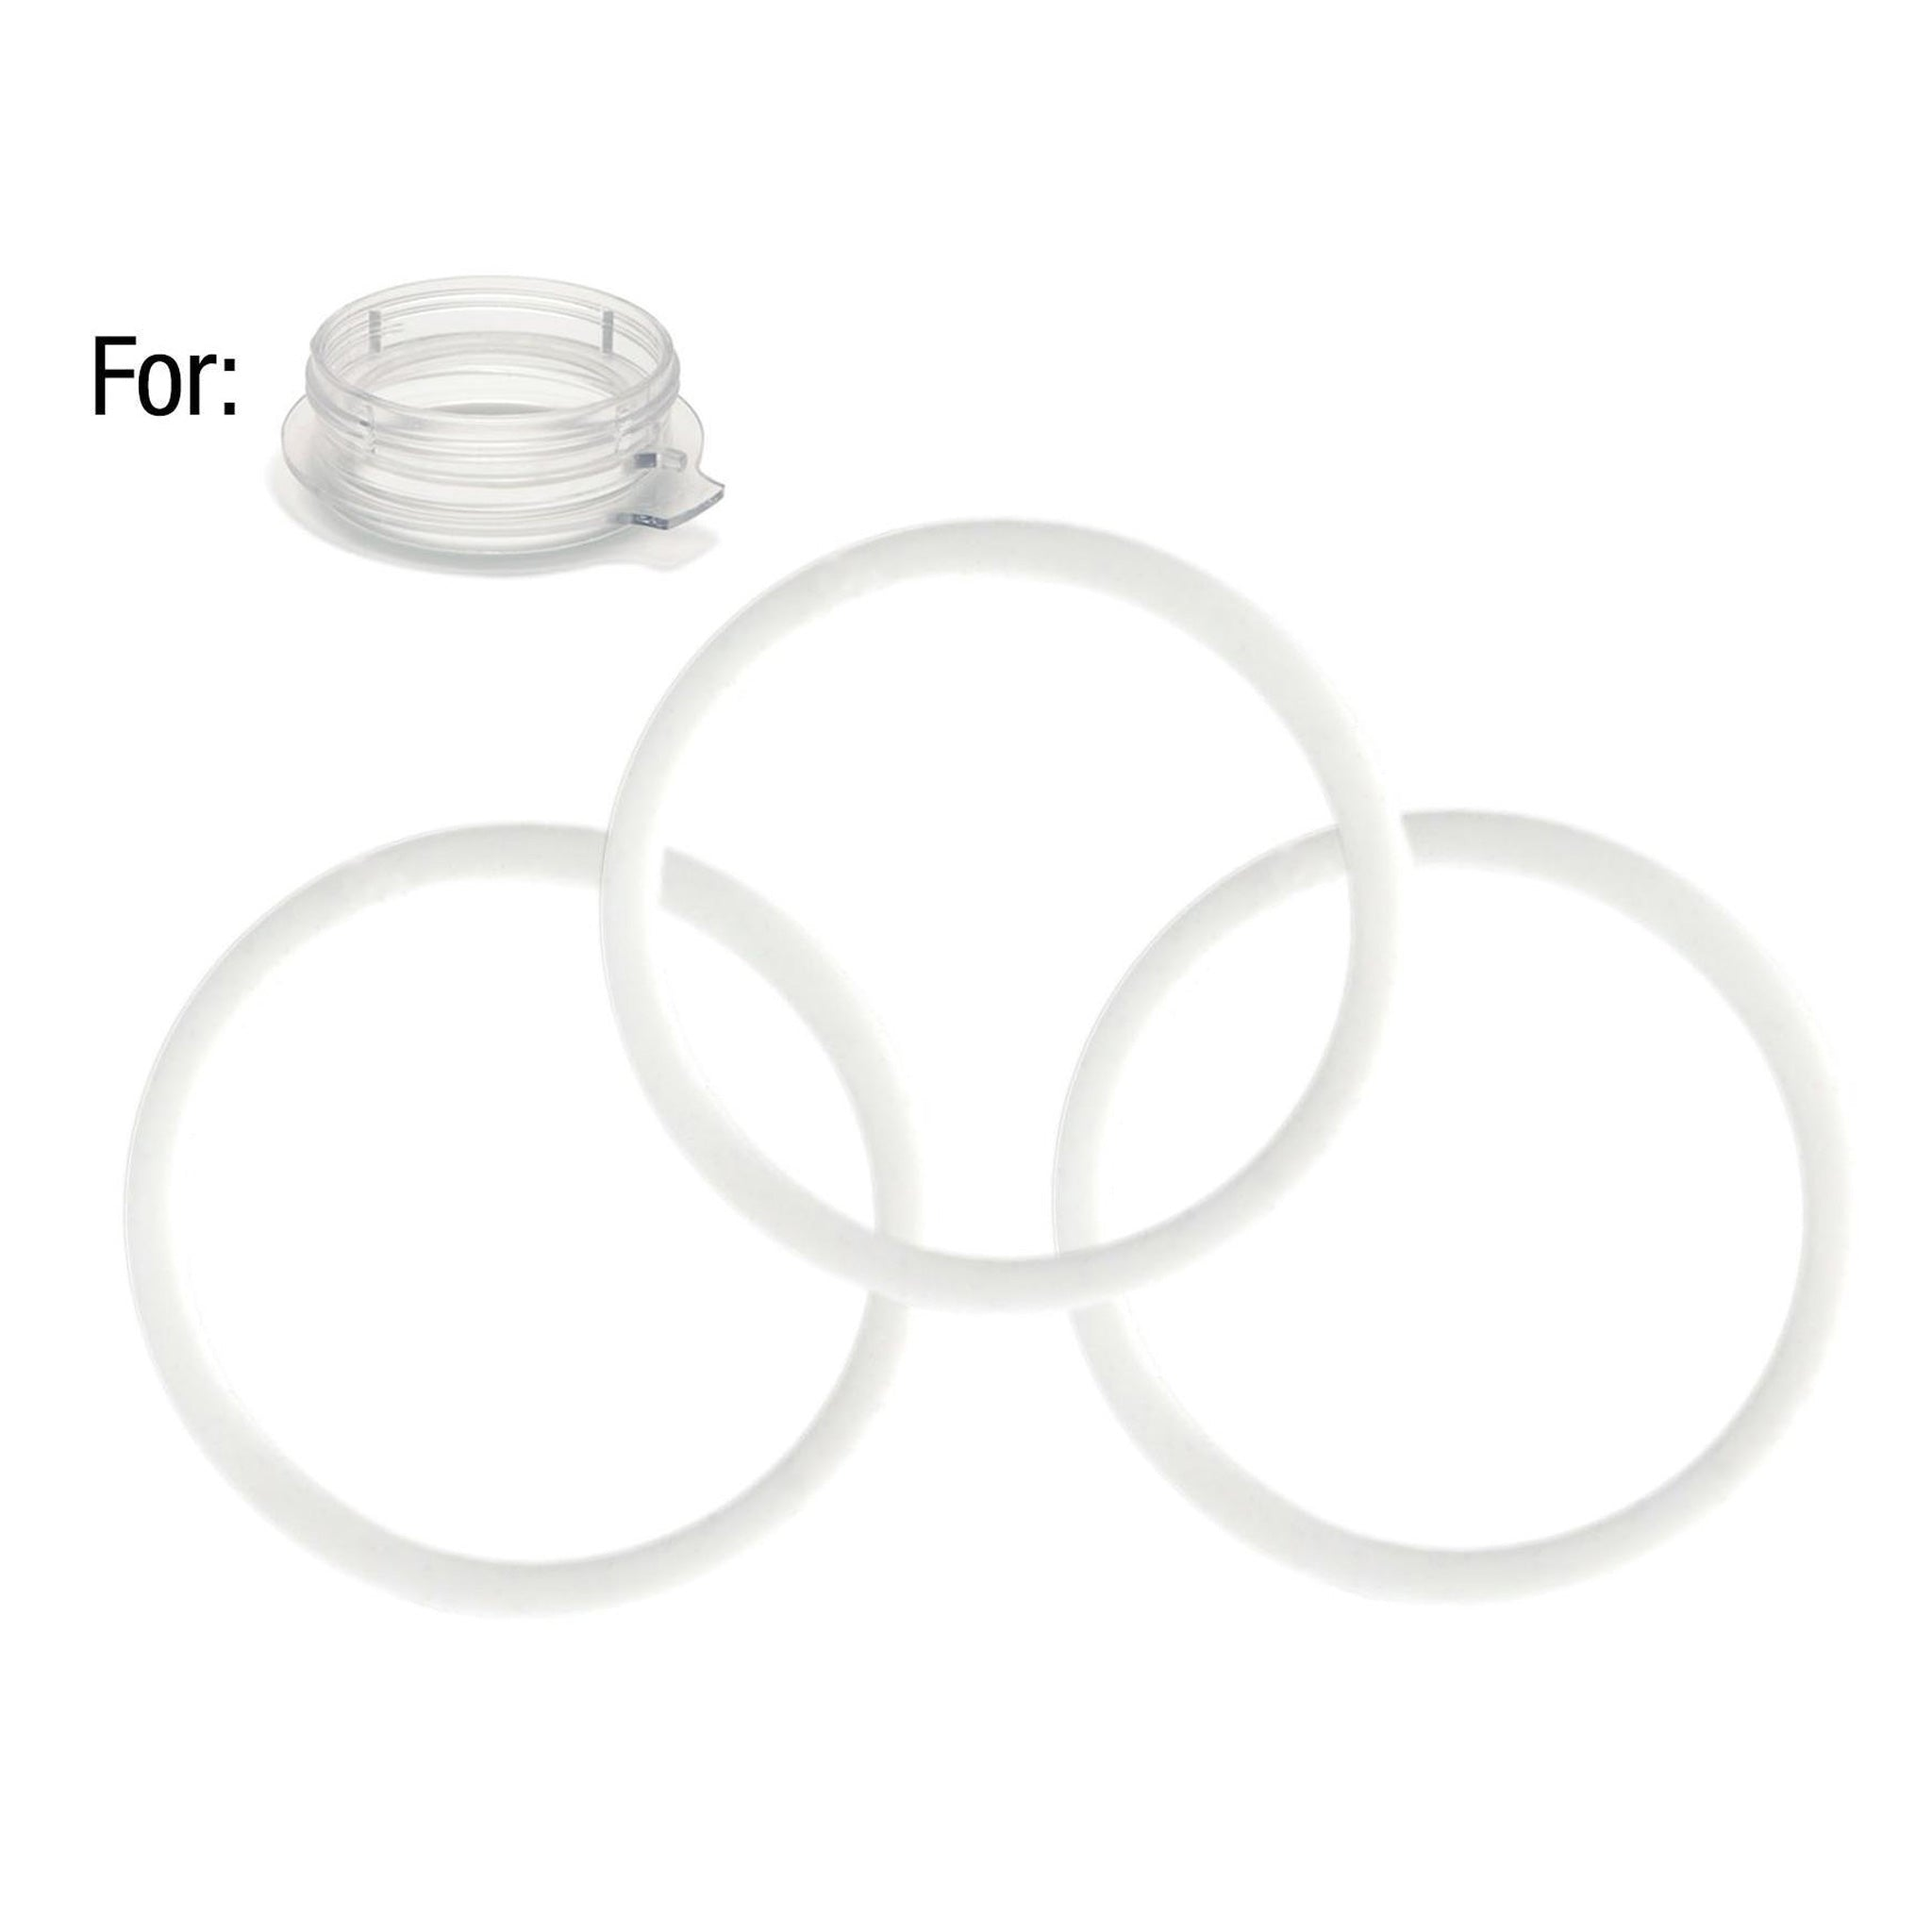 3 Mason Jar Adapter O-Rings for the Mason Jar Adapter of the Personal Blender®.